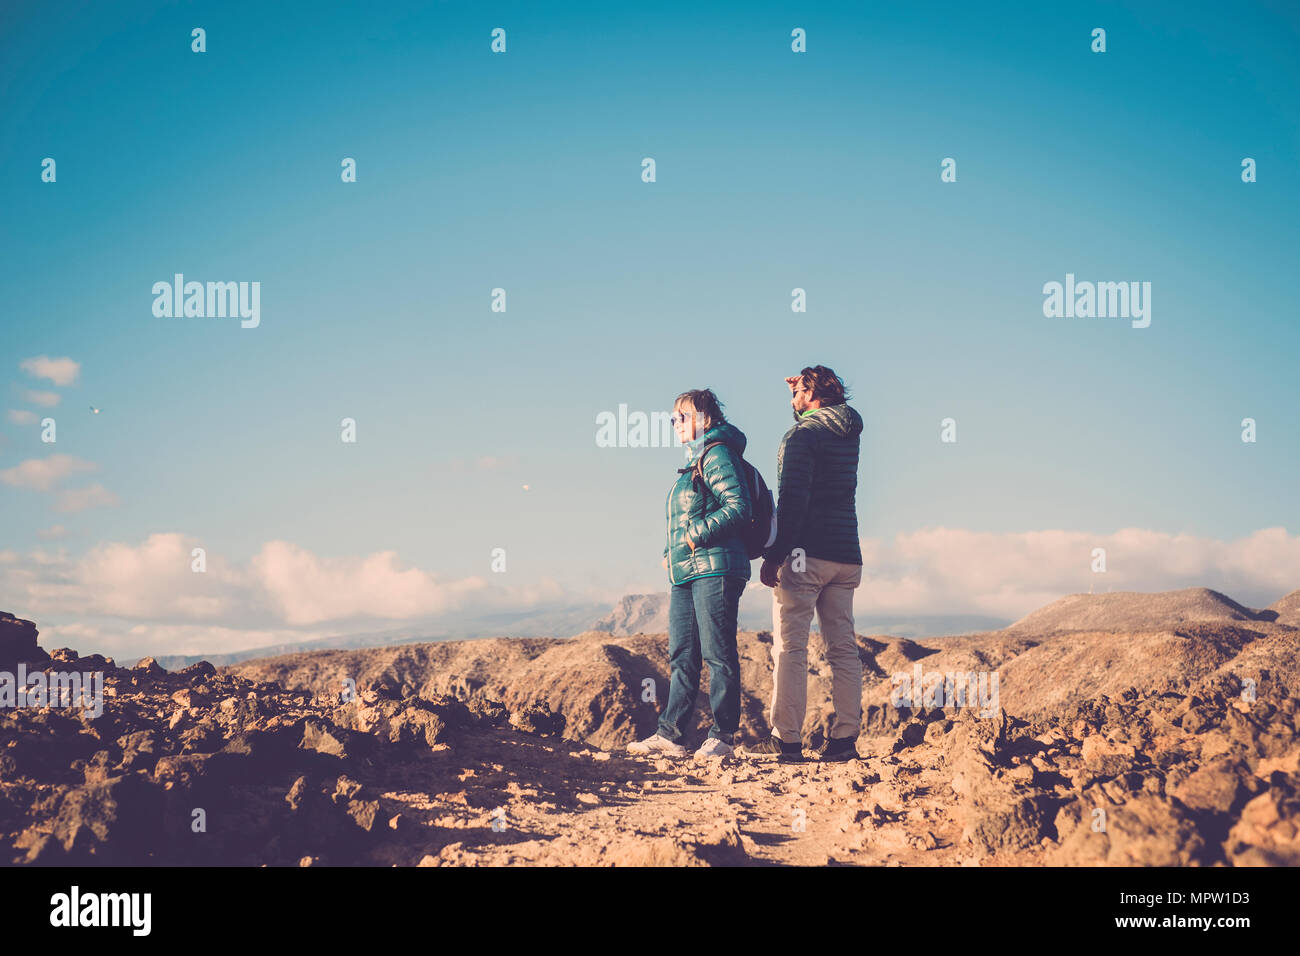 Senior mother and 45 year old son spend time together walking on an isolated path - Stock Image